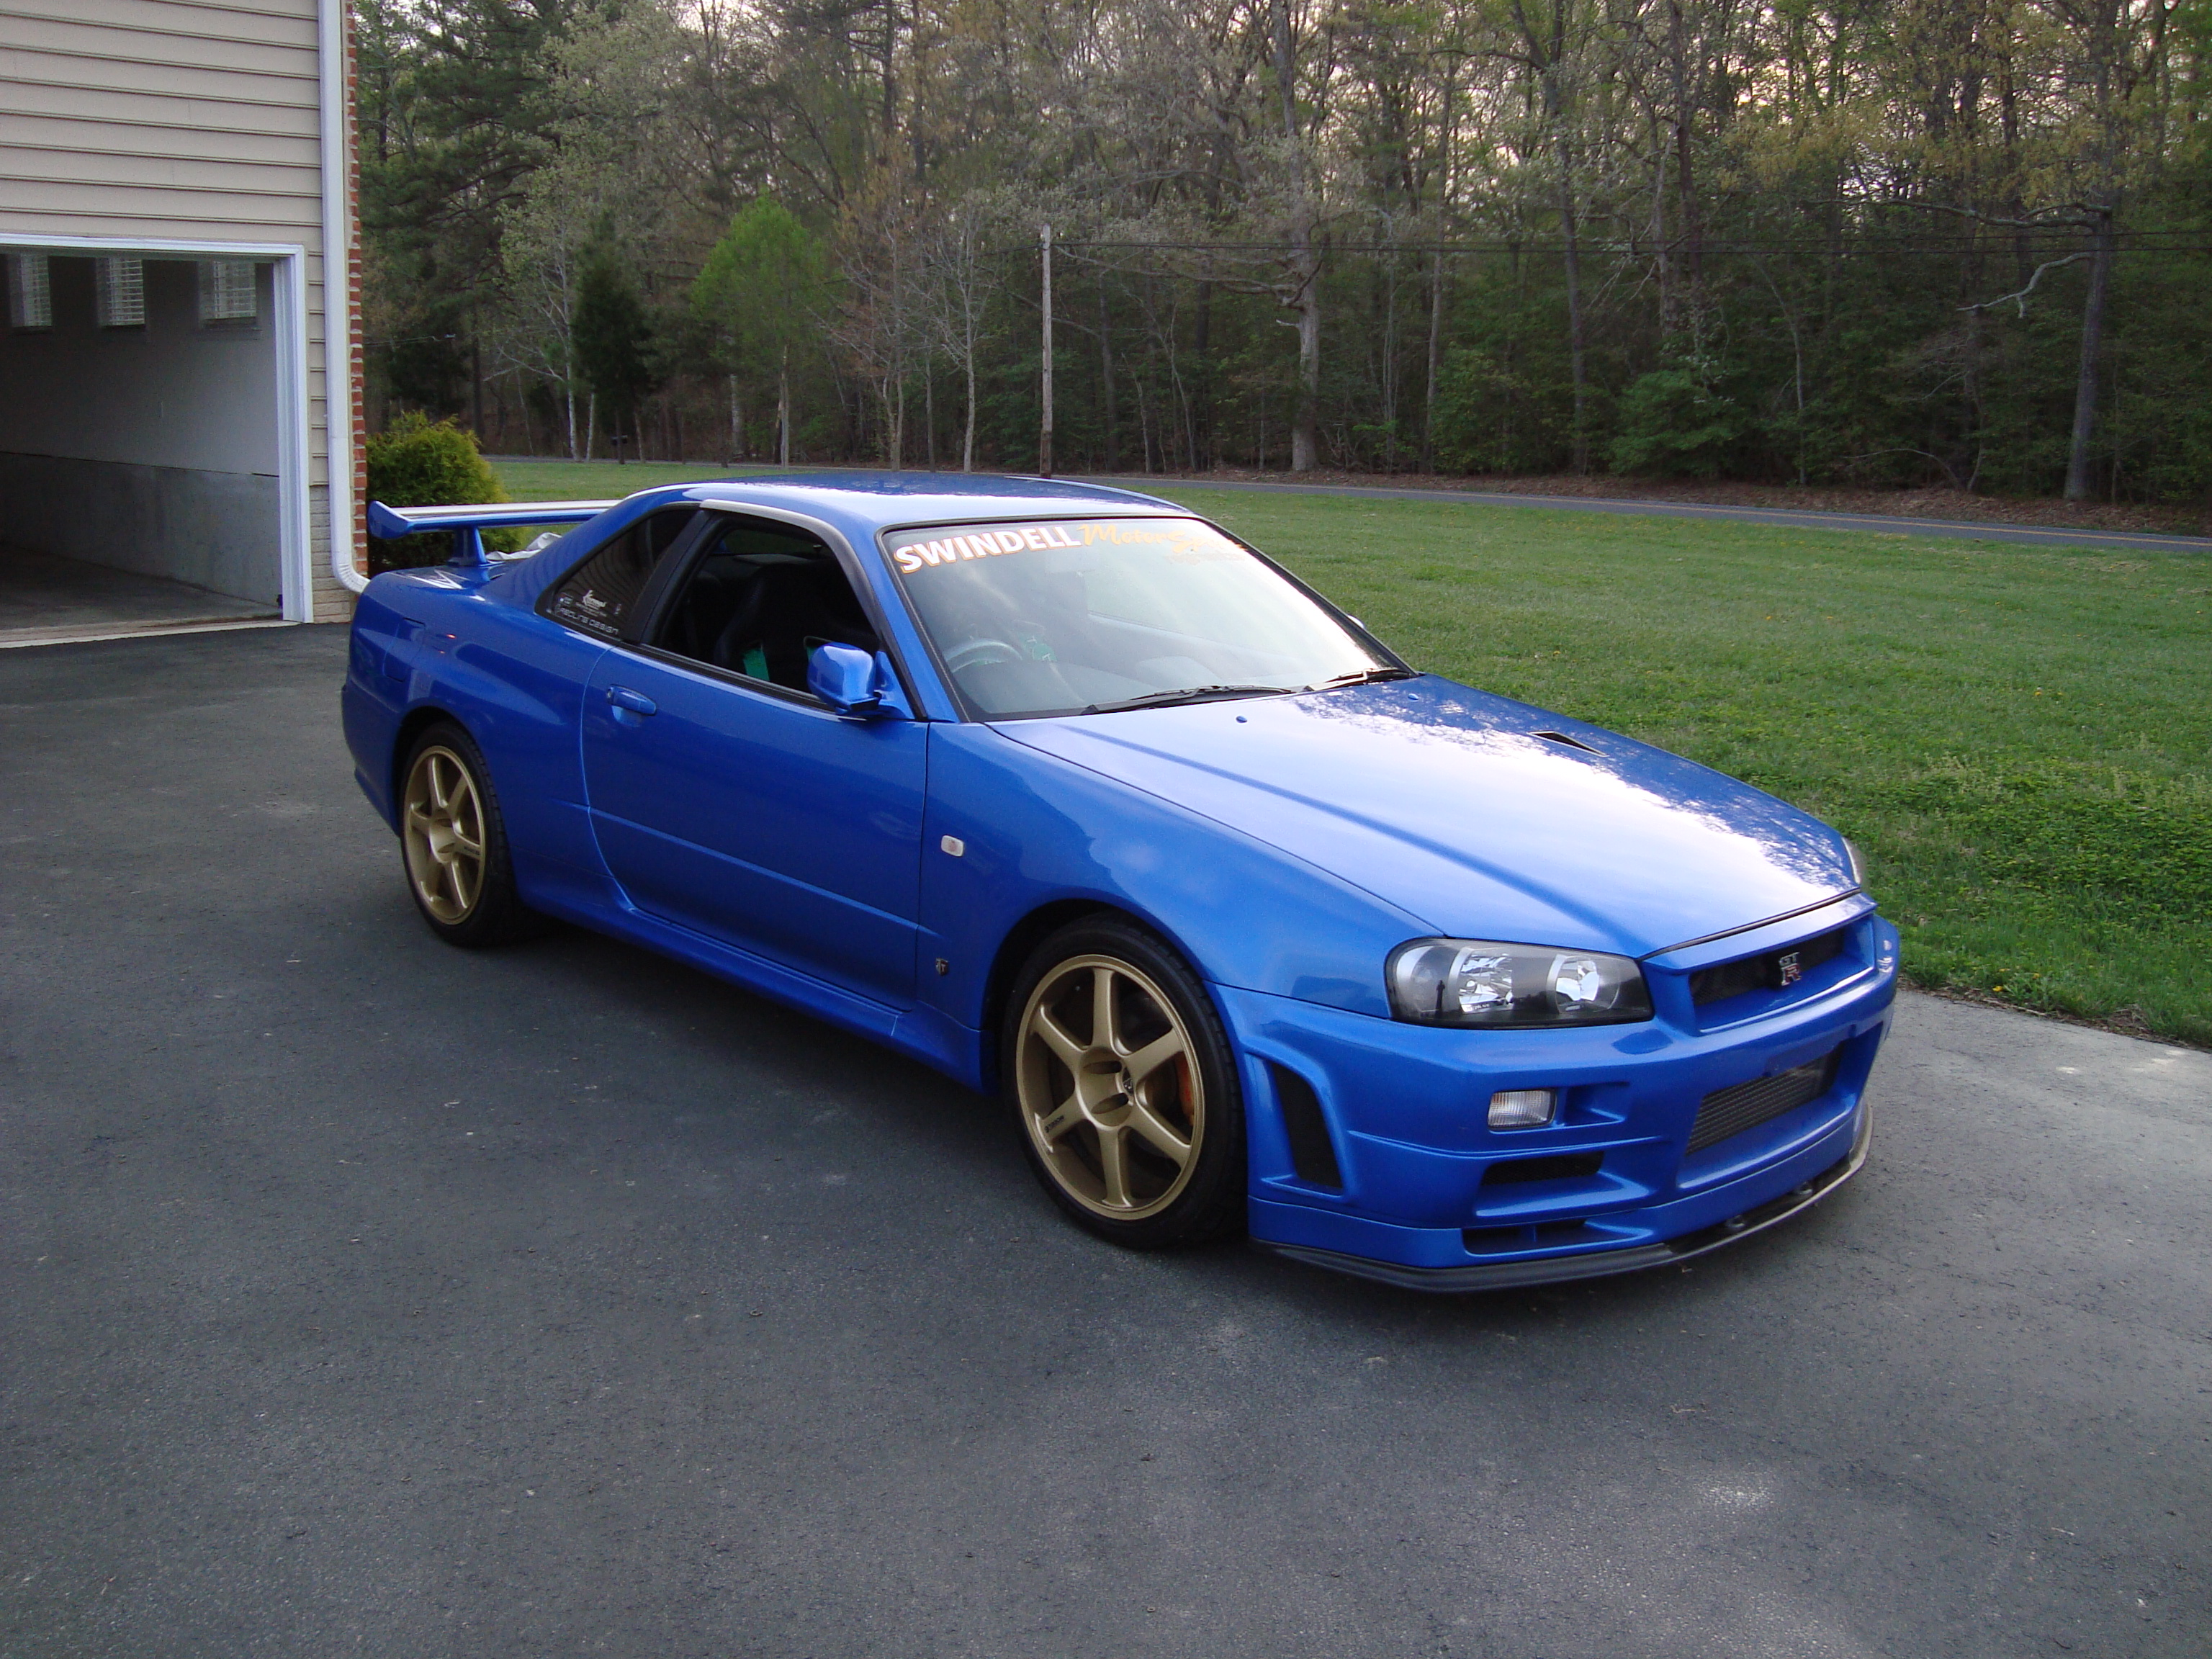 2002 nissan skyline r34 gtr vspec 2 nur sold to our u s customer in washington